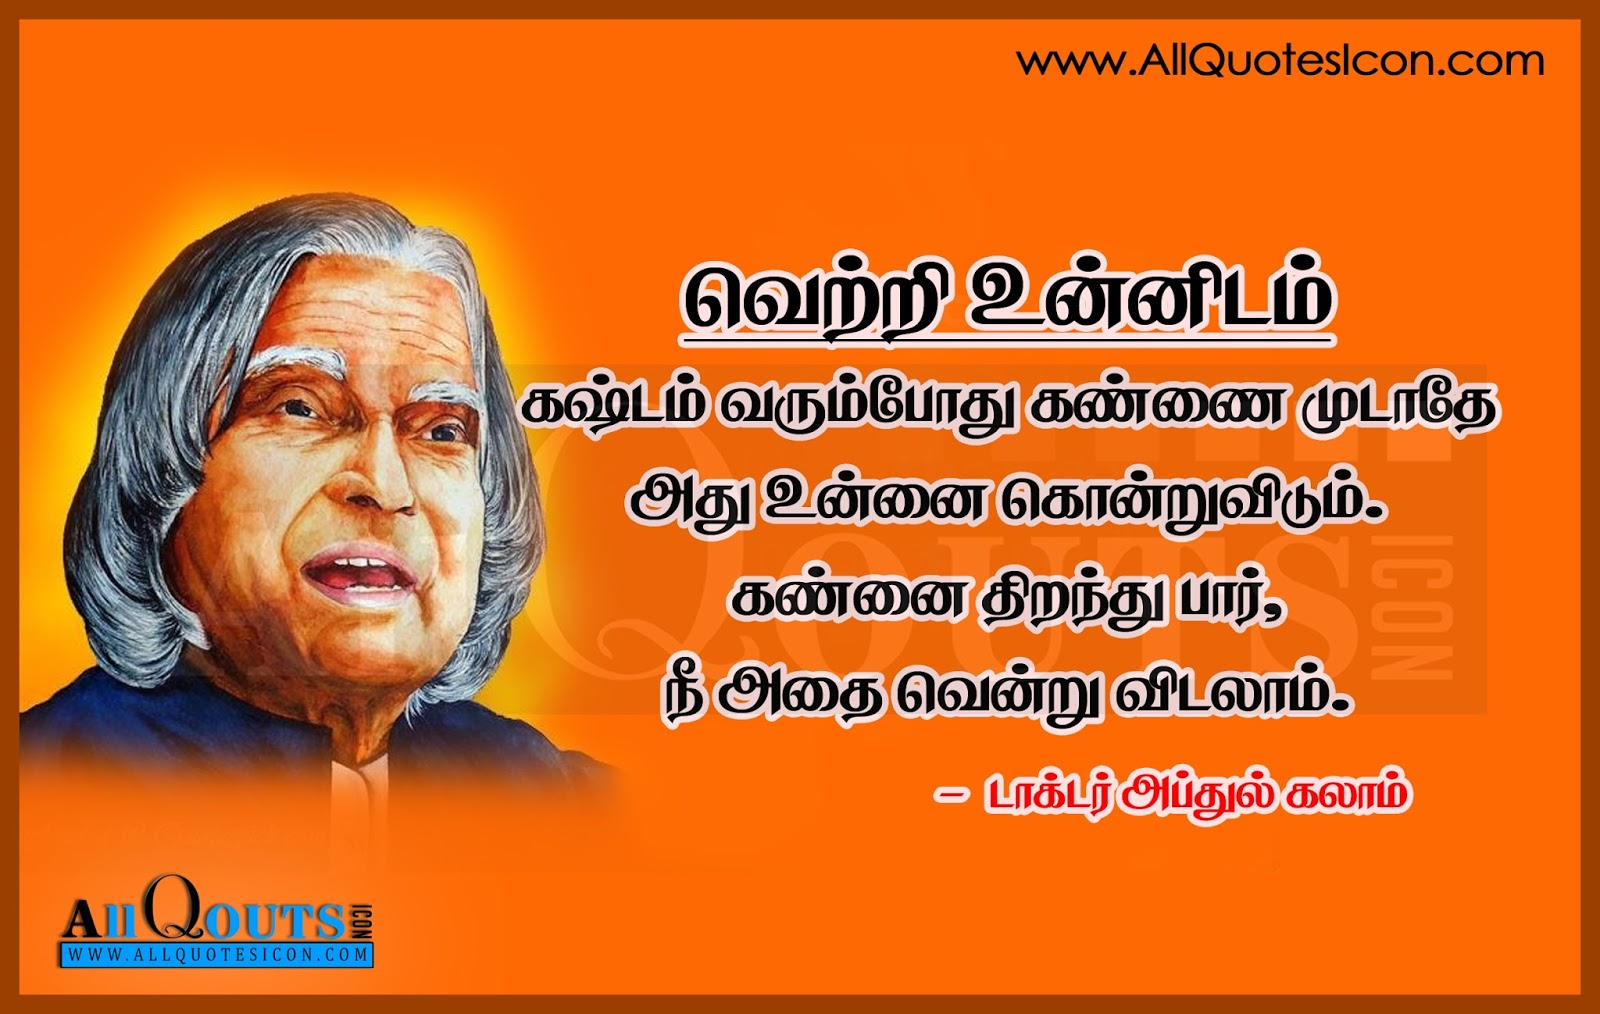 abdul kalam quotes and images hd wallpapers nice